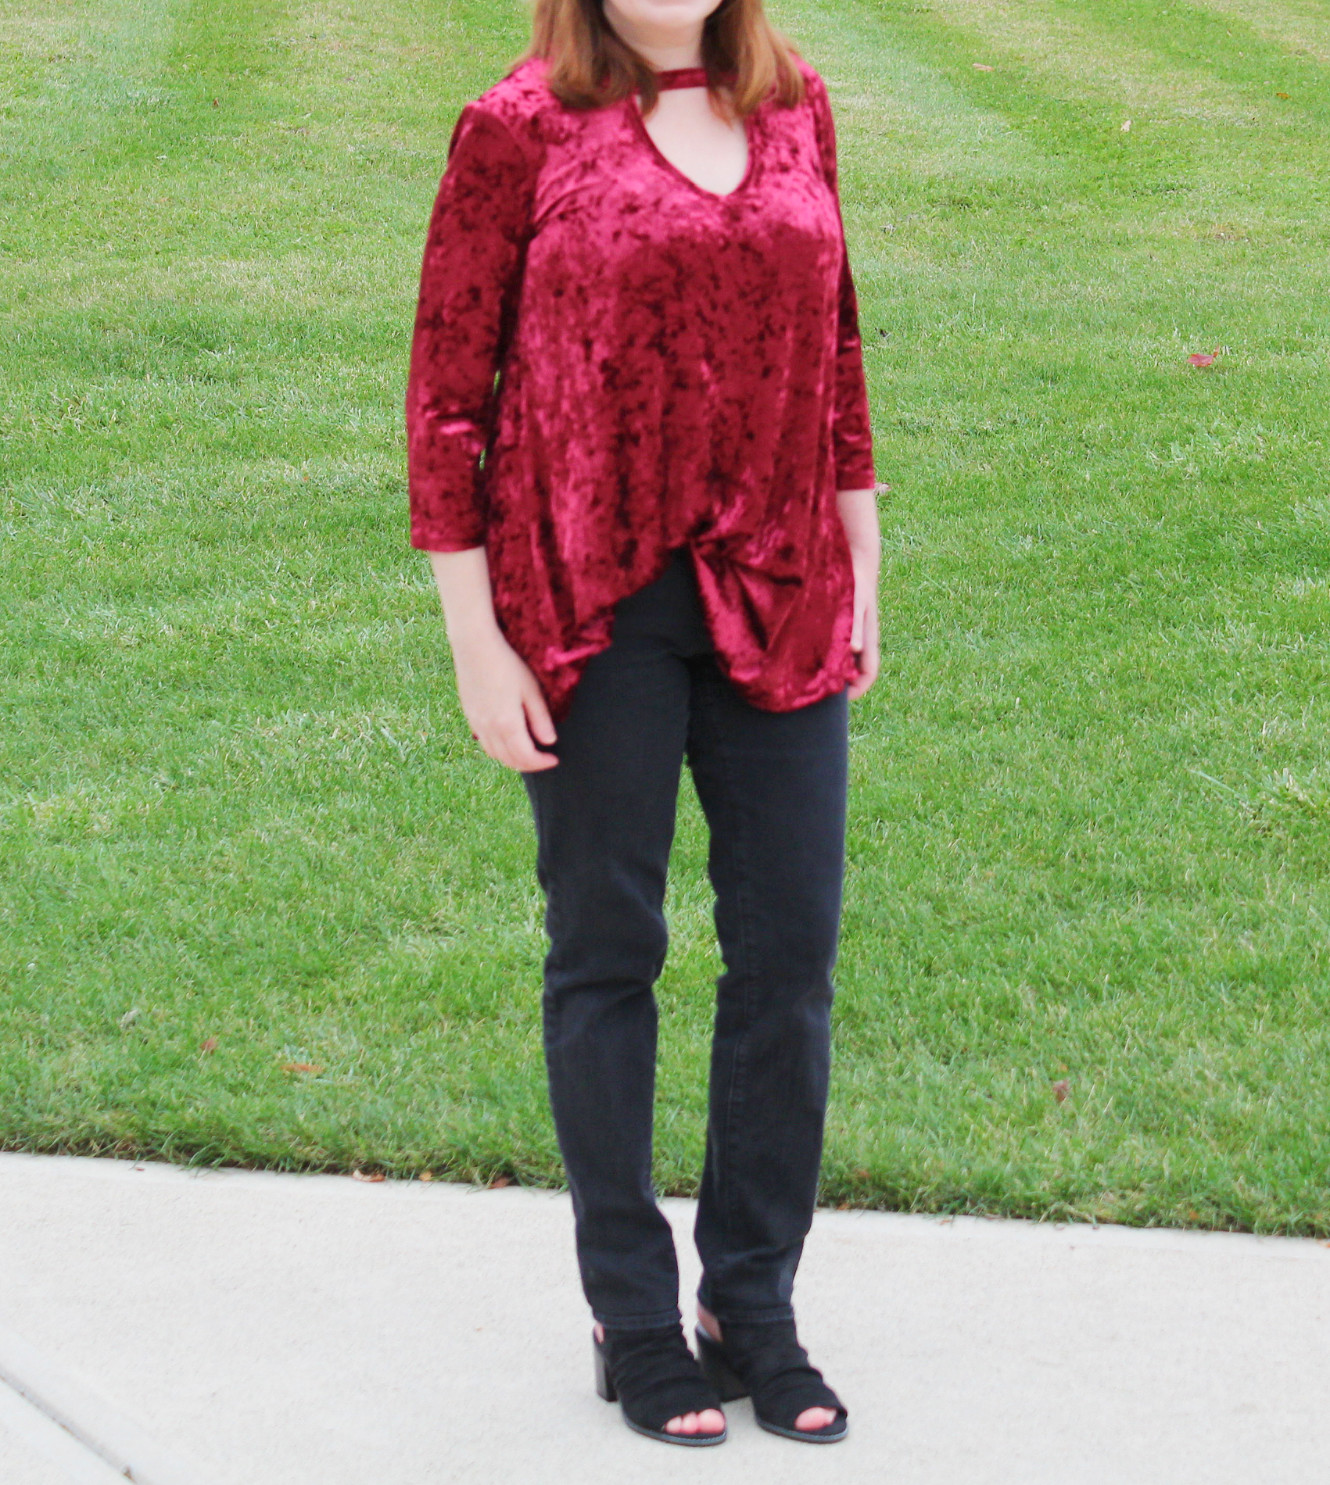 Crushed Velvet Top, Black Jeans, And Black Shoes